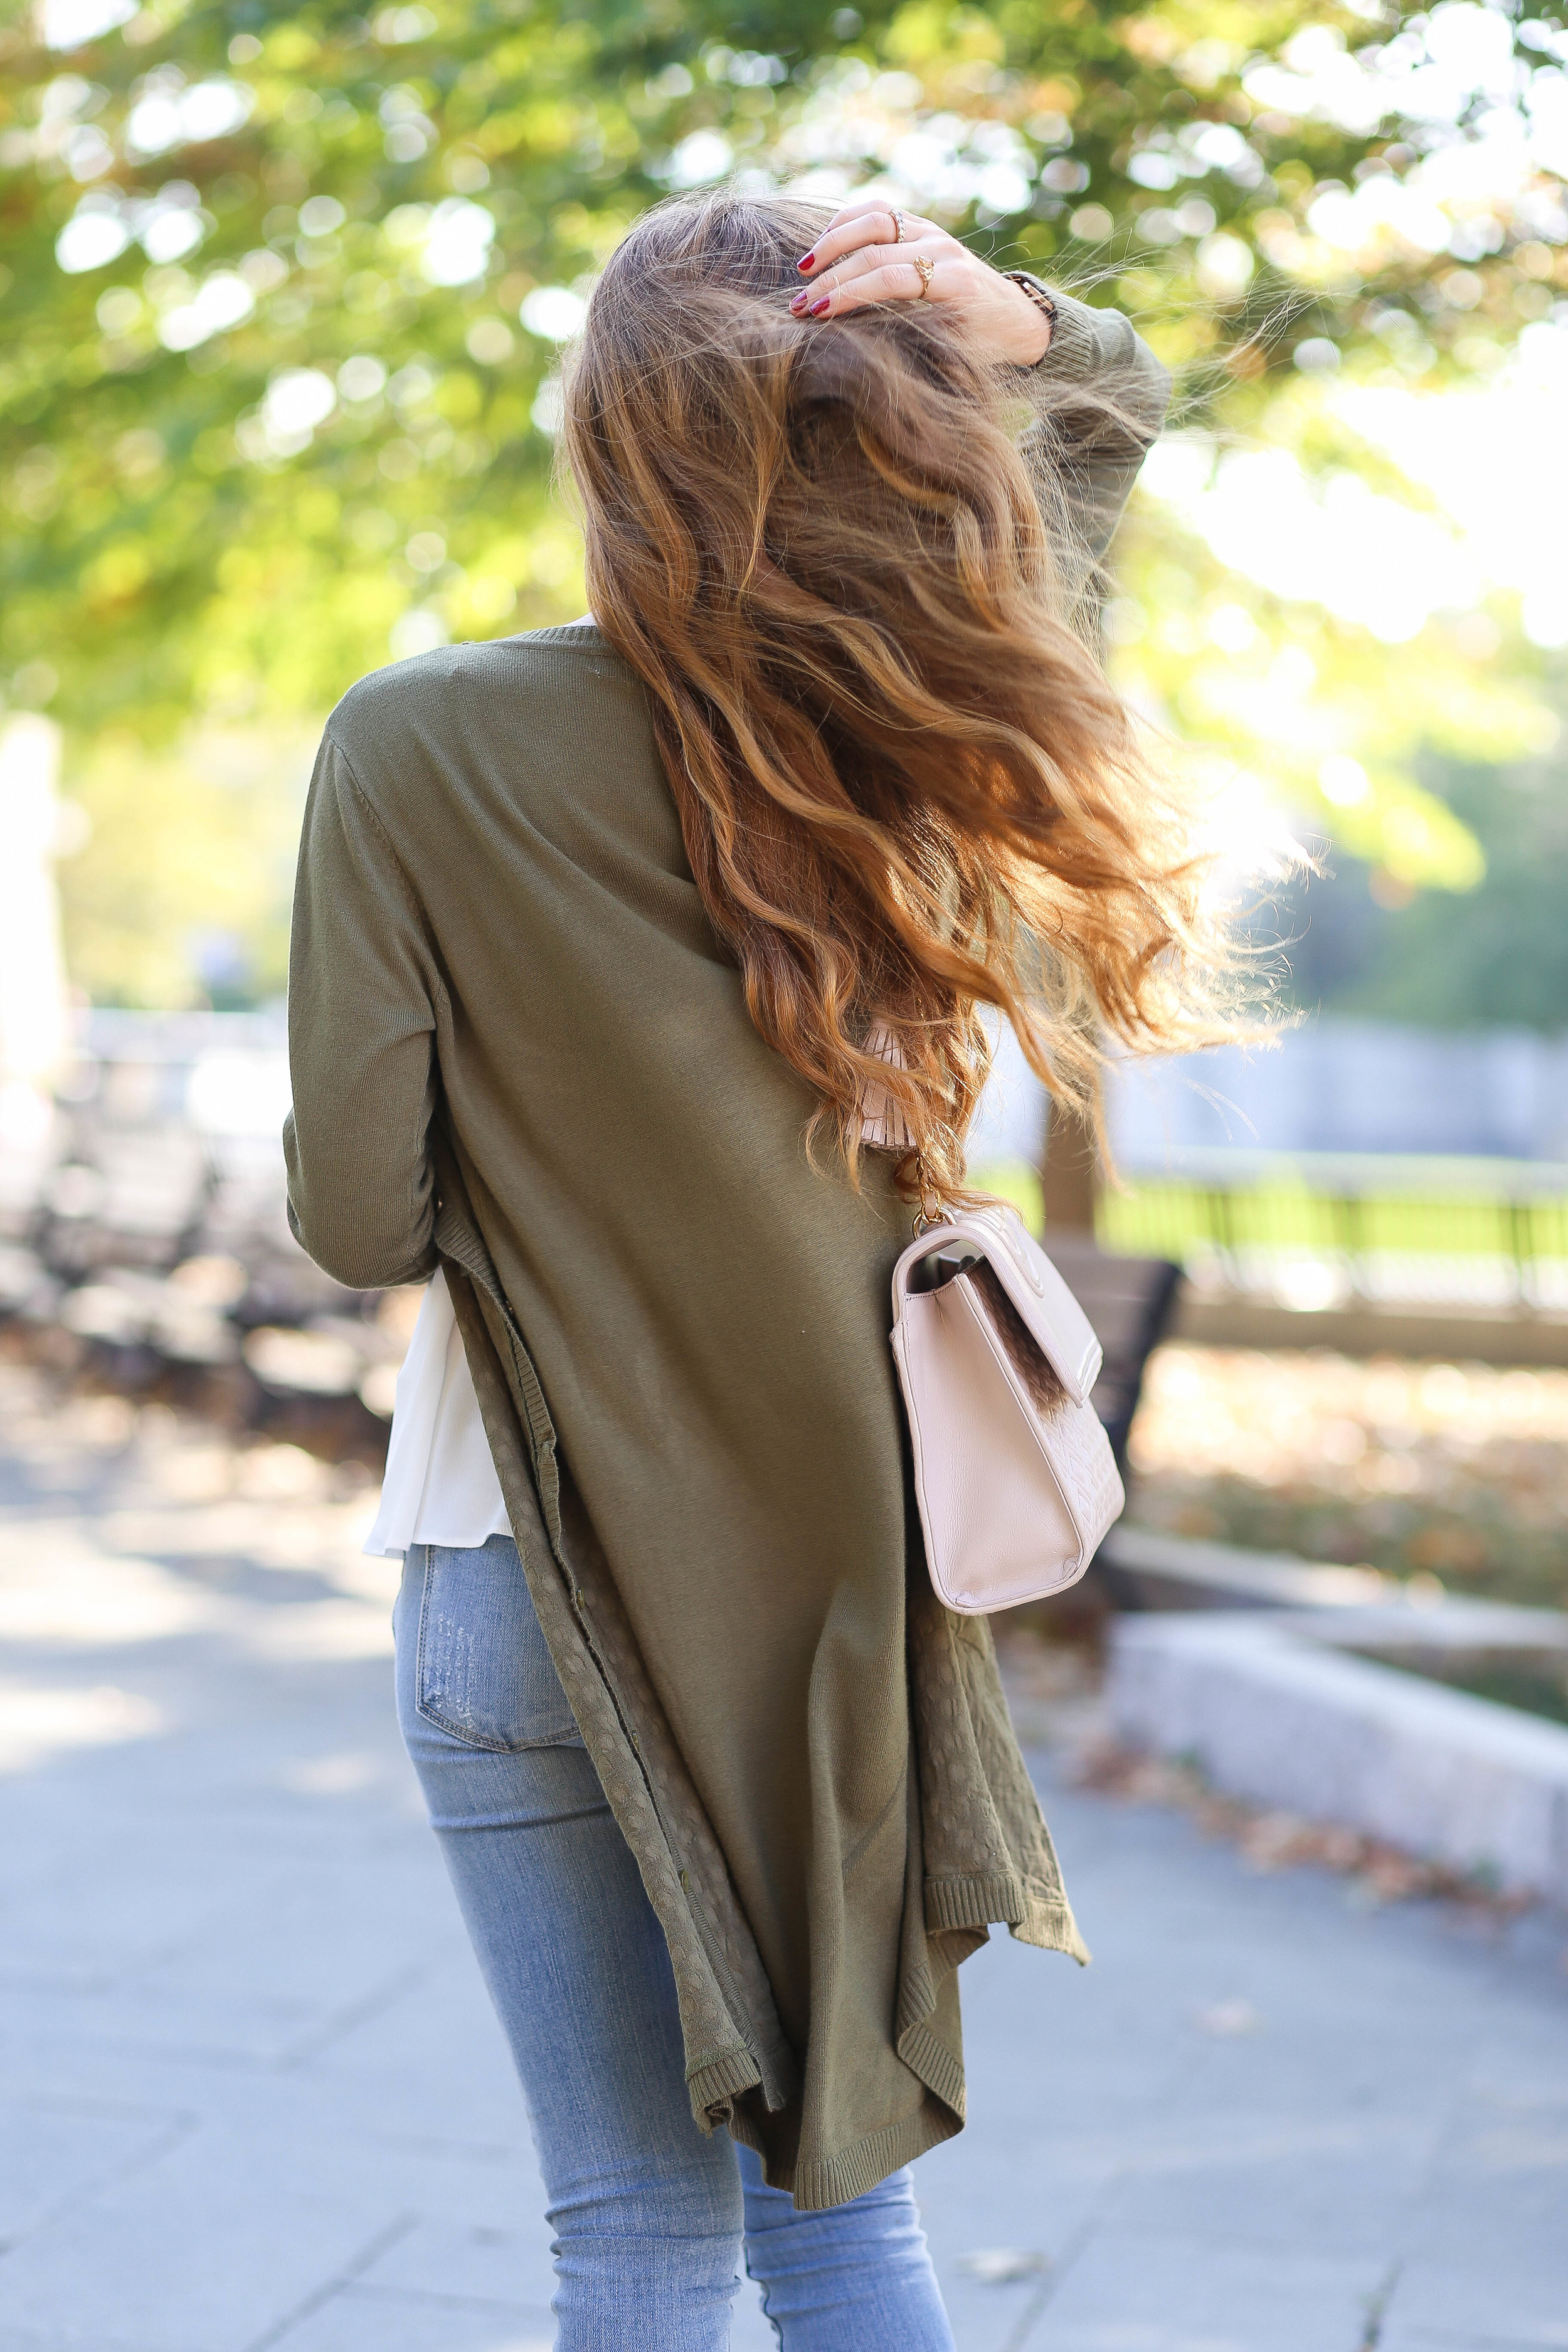 Olive Green Cardigan. White Tank Top. Light Blue Distressed Skinny Jeans. Tory Burch Cream Bag. Tan Booties.